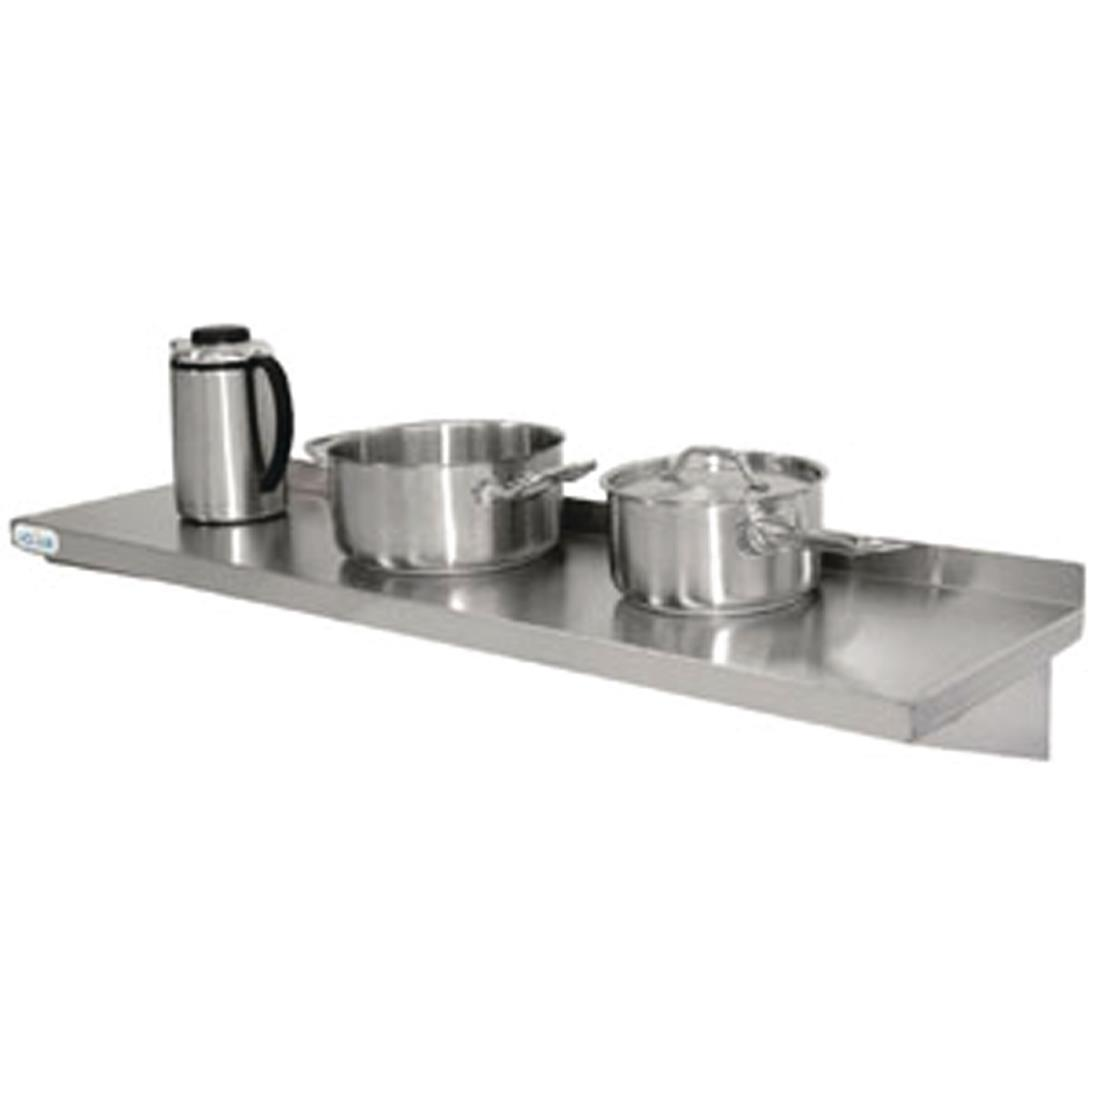 Y753 - Vogue Stainless Steel Kitchen Shelf